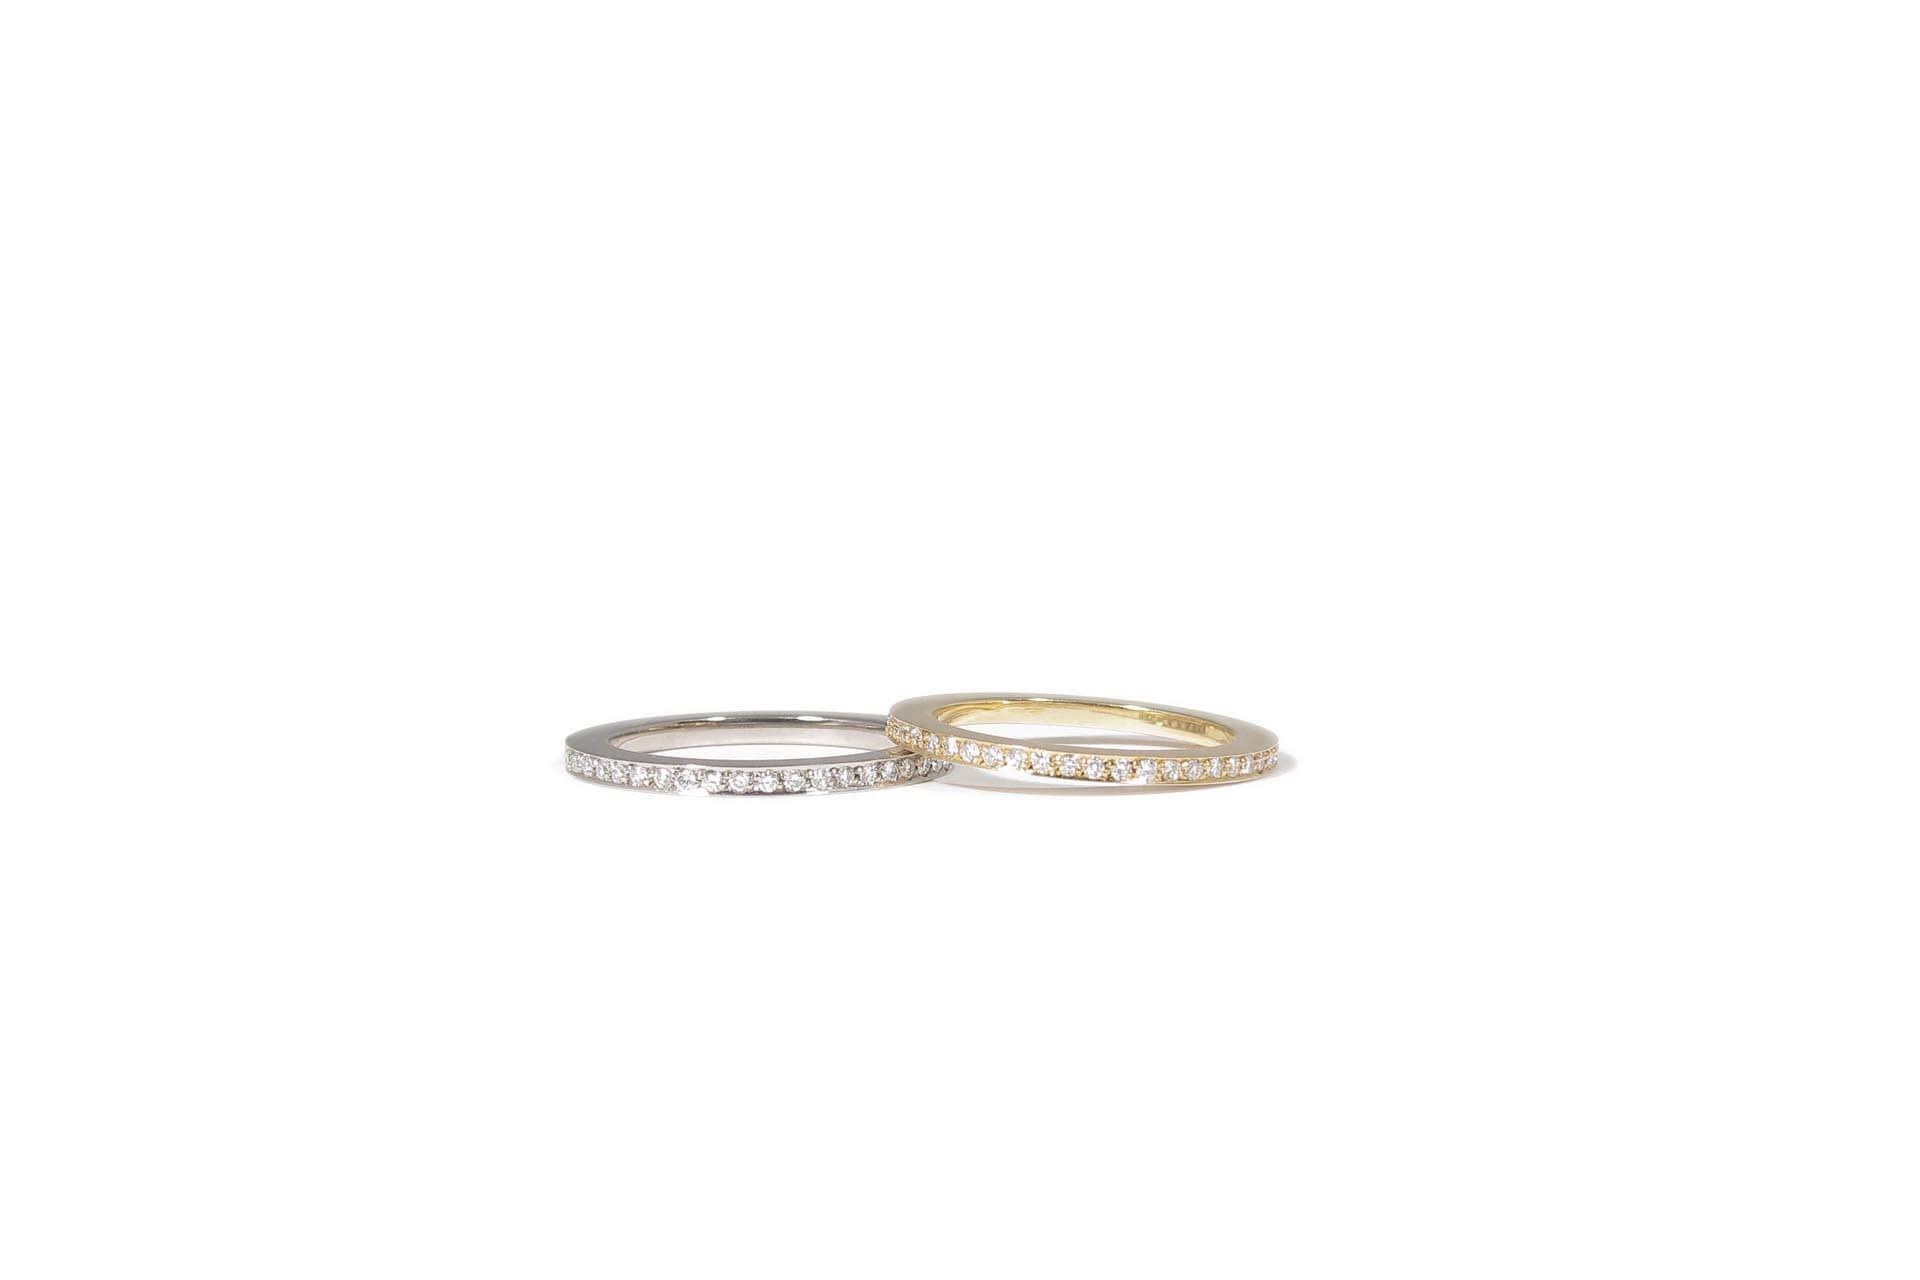 Two yellow and white gold rings with diamonds